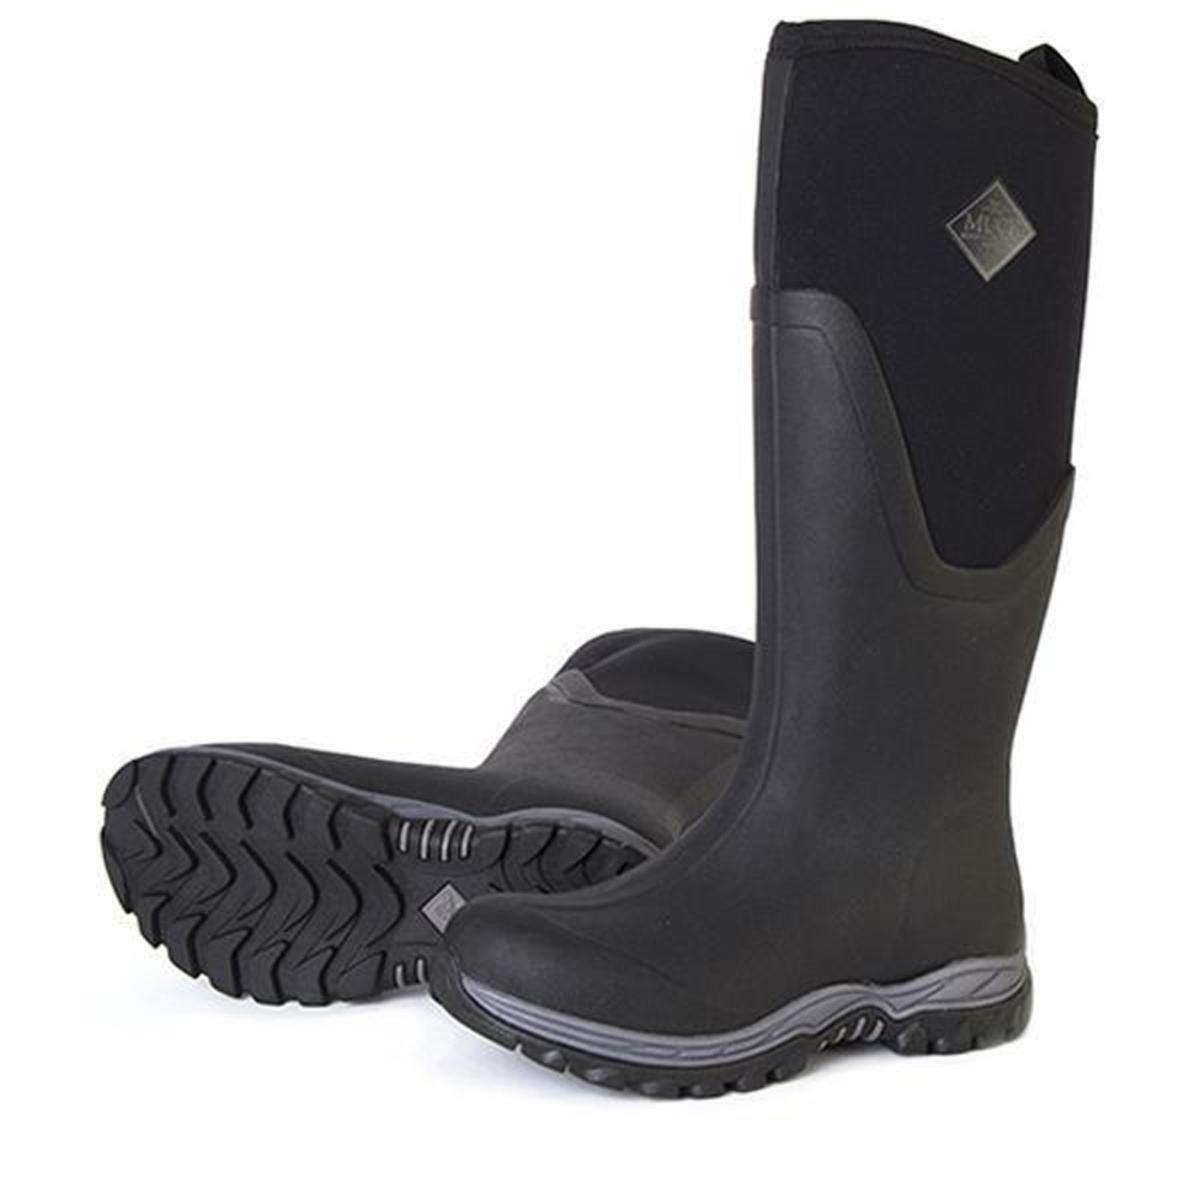 Muck Boots Women s AS2T-000 Arctic Sport II Tall Insulated Winter Boots Size 10 - $110.00